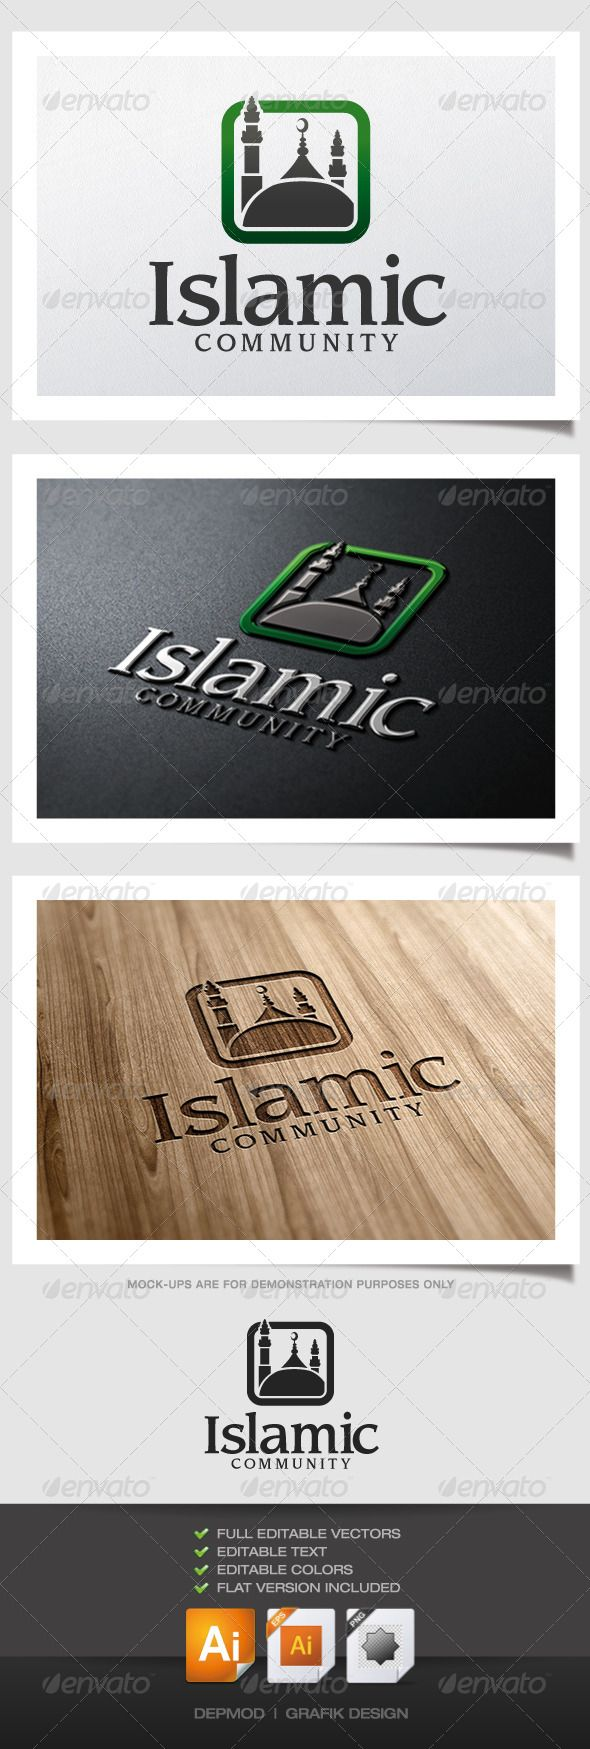 Islamic Community - Logo Design Template Vector #logotype Download it here: http://graphicriver.net/item/islamic-community-logo/5155363?s_rank=1385?ref=nexion